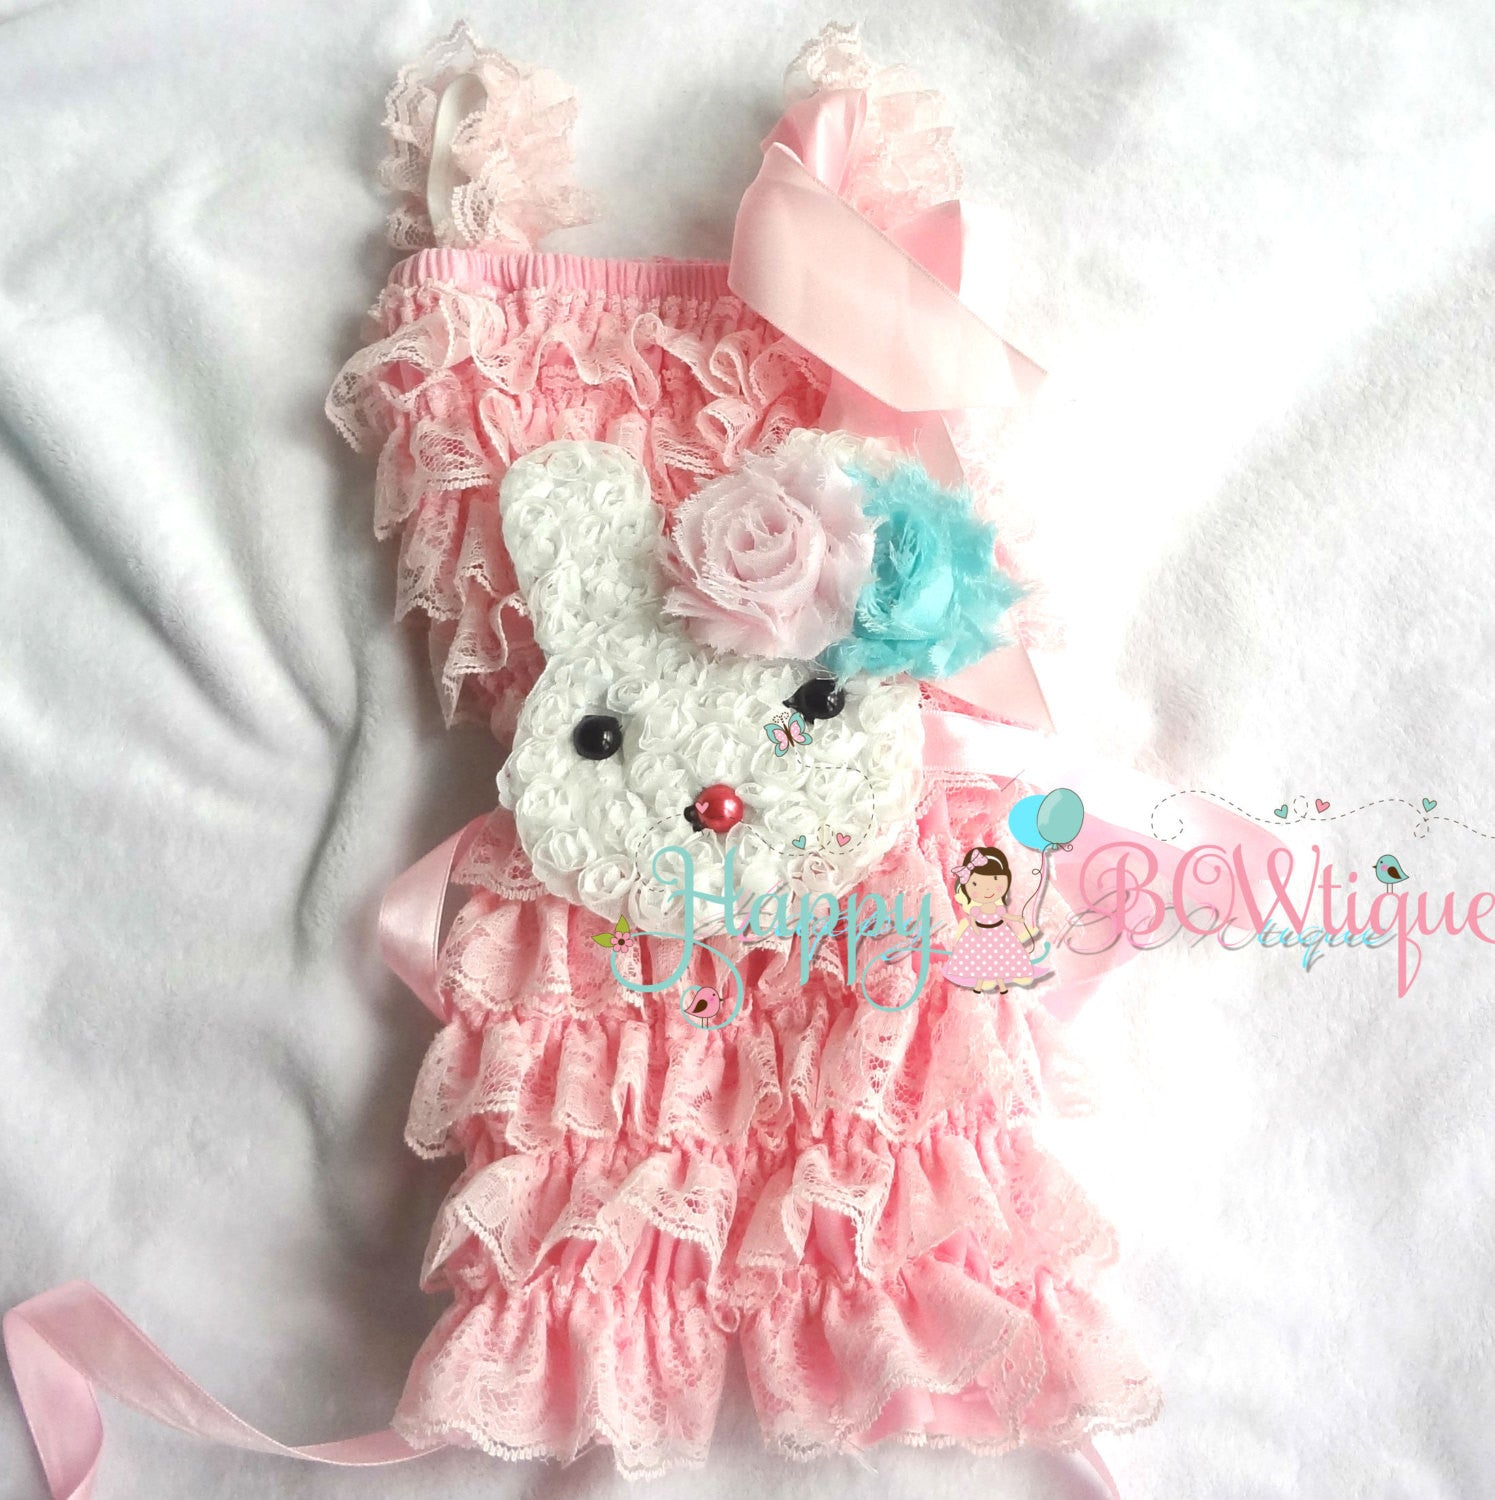 Pink Easter Bunny Petti Lace Romper Set - Happy BOWtique - children's clothing, Baby Girl clothing